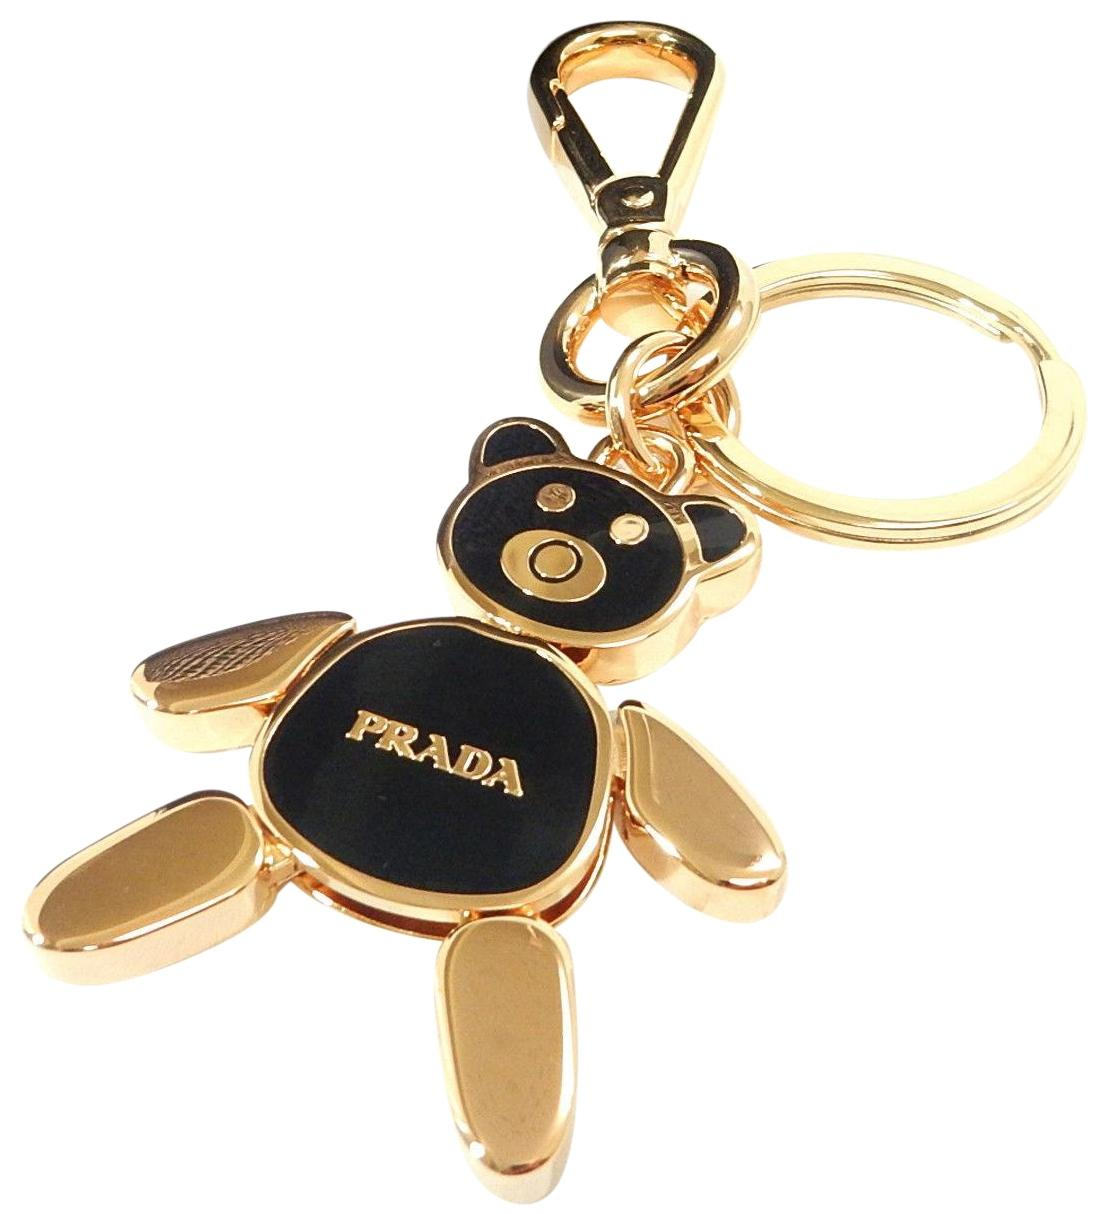 Prada ring detail keyring - Black p4sMngV9